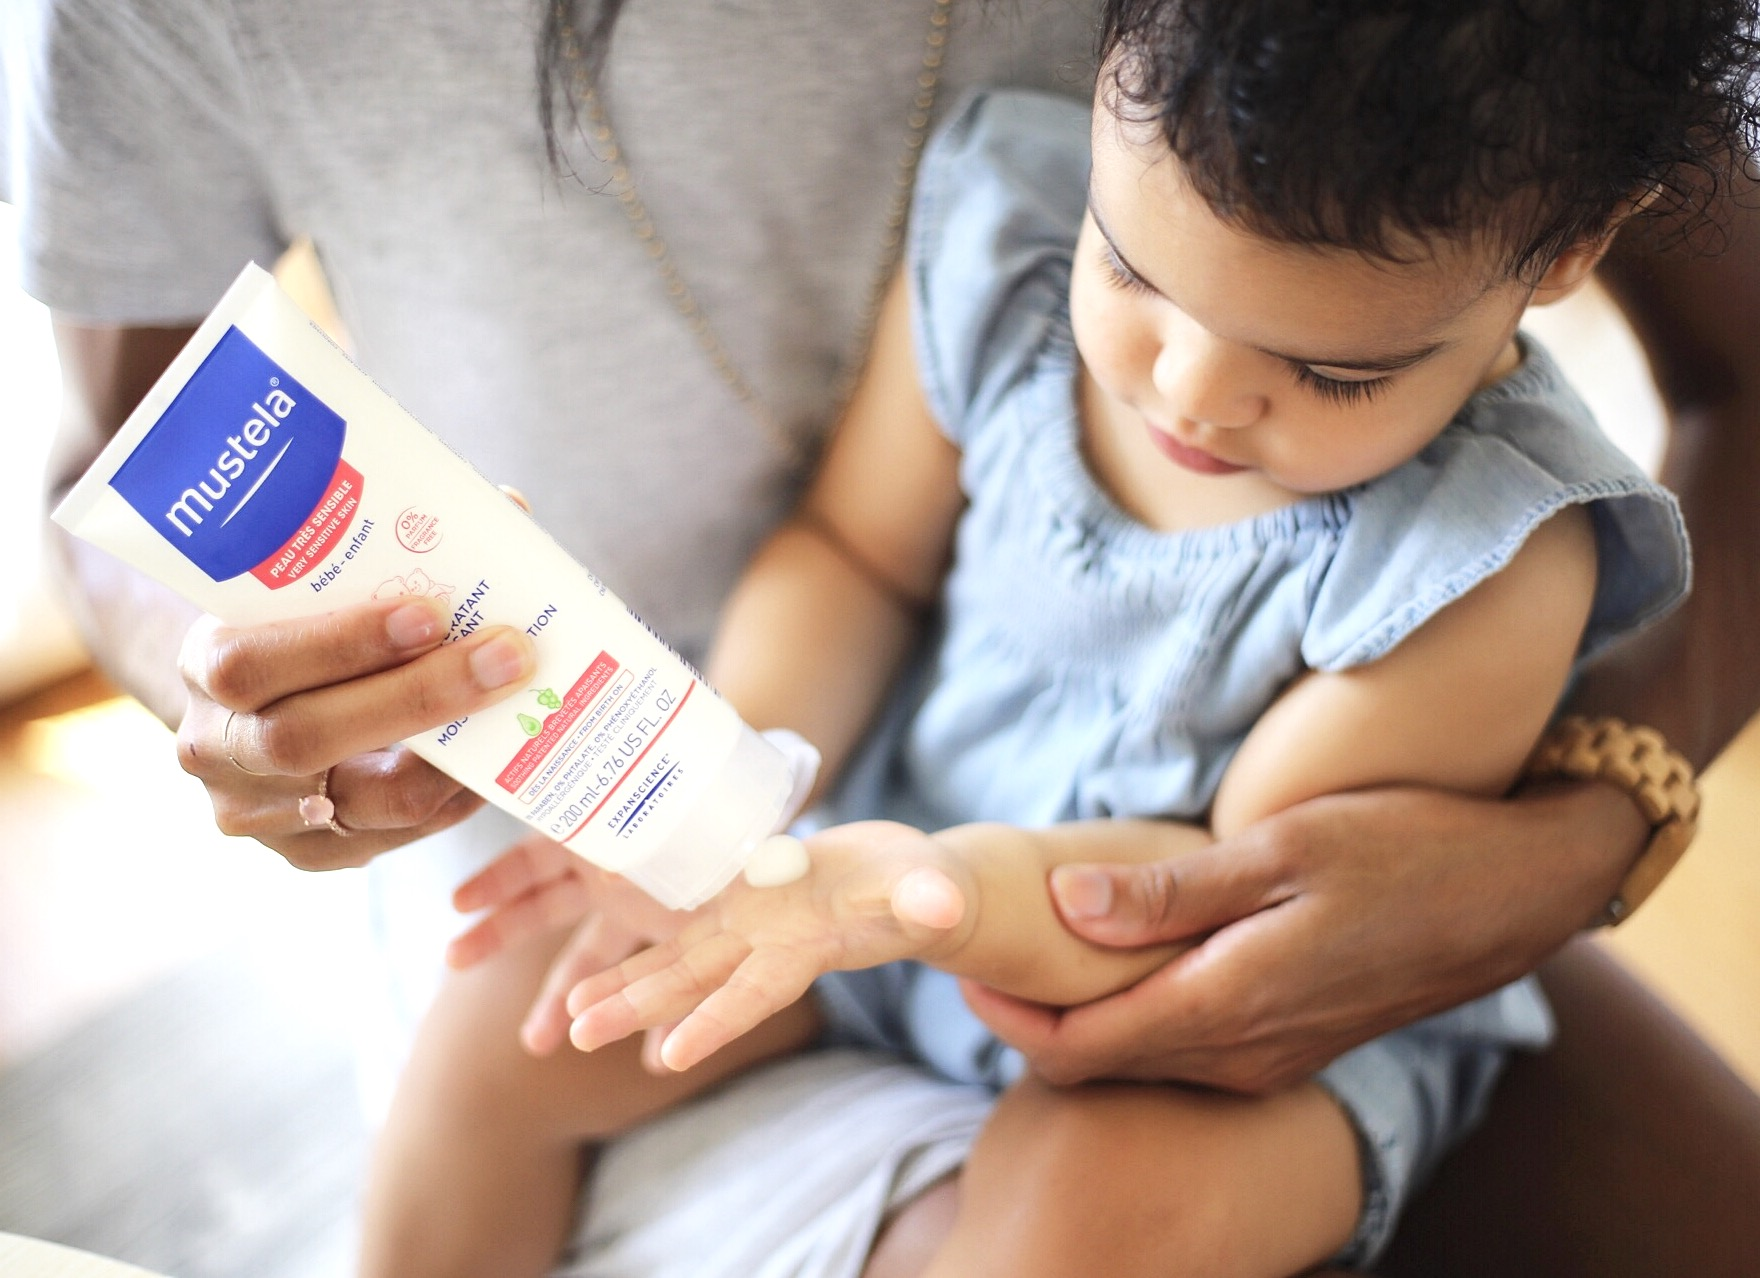 mustela skin care, essentials, toddler skin care, the mom life, toddler skin, sensitive skin, baby care, toddler must have